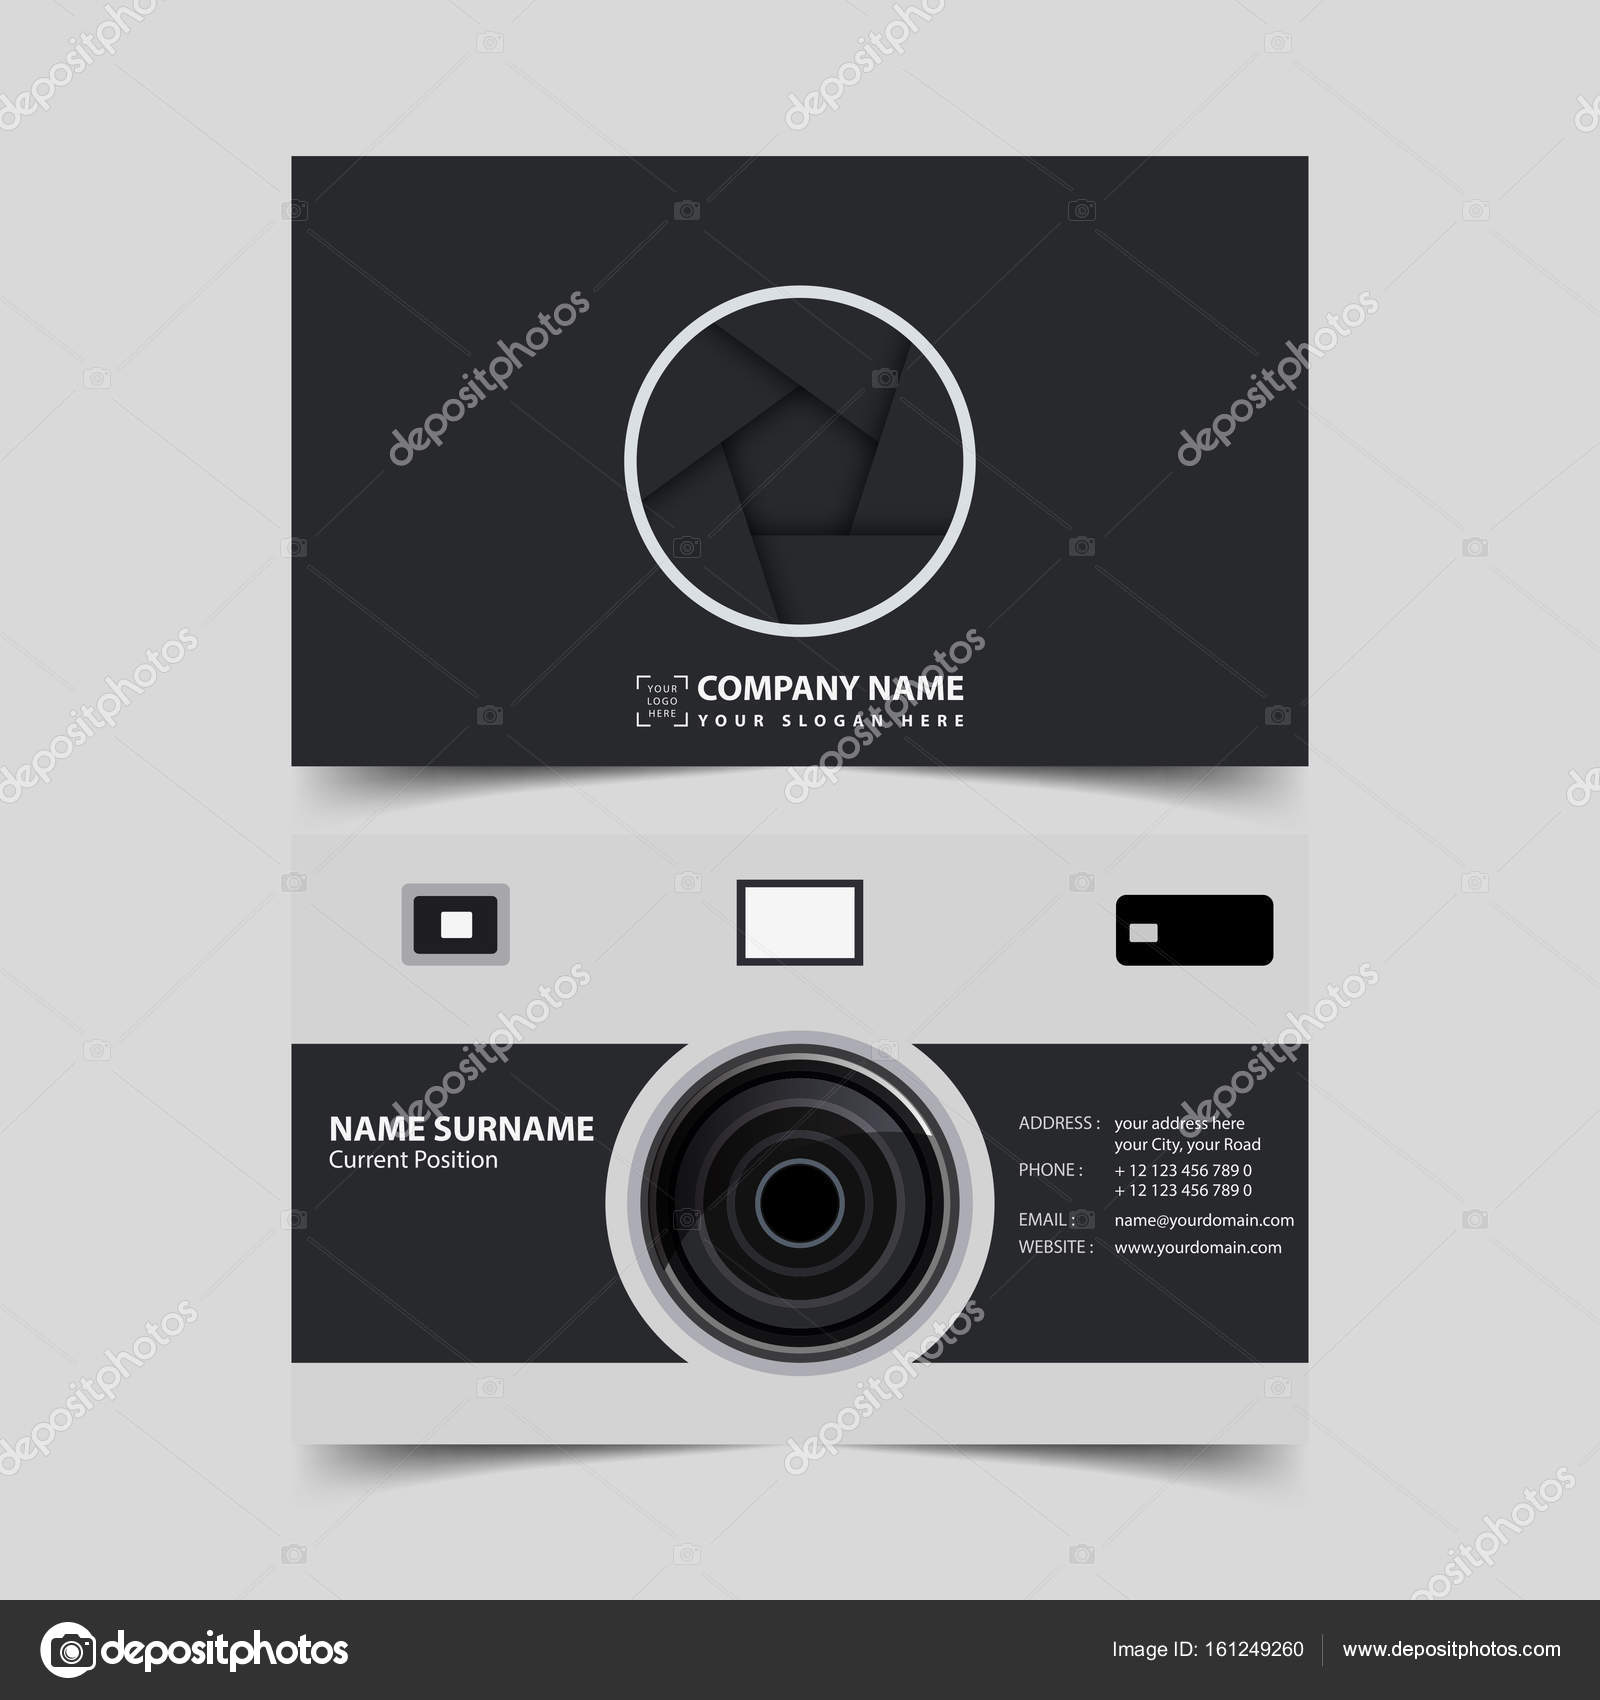 Photographer business card design template stock vector photographer business card design template stock vector reheart Images